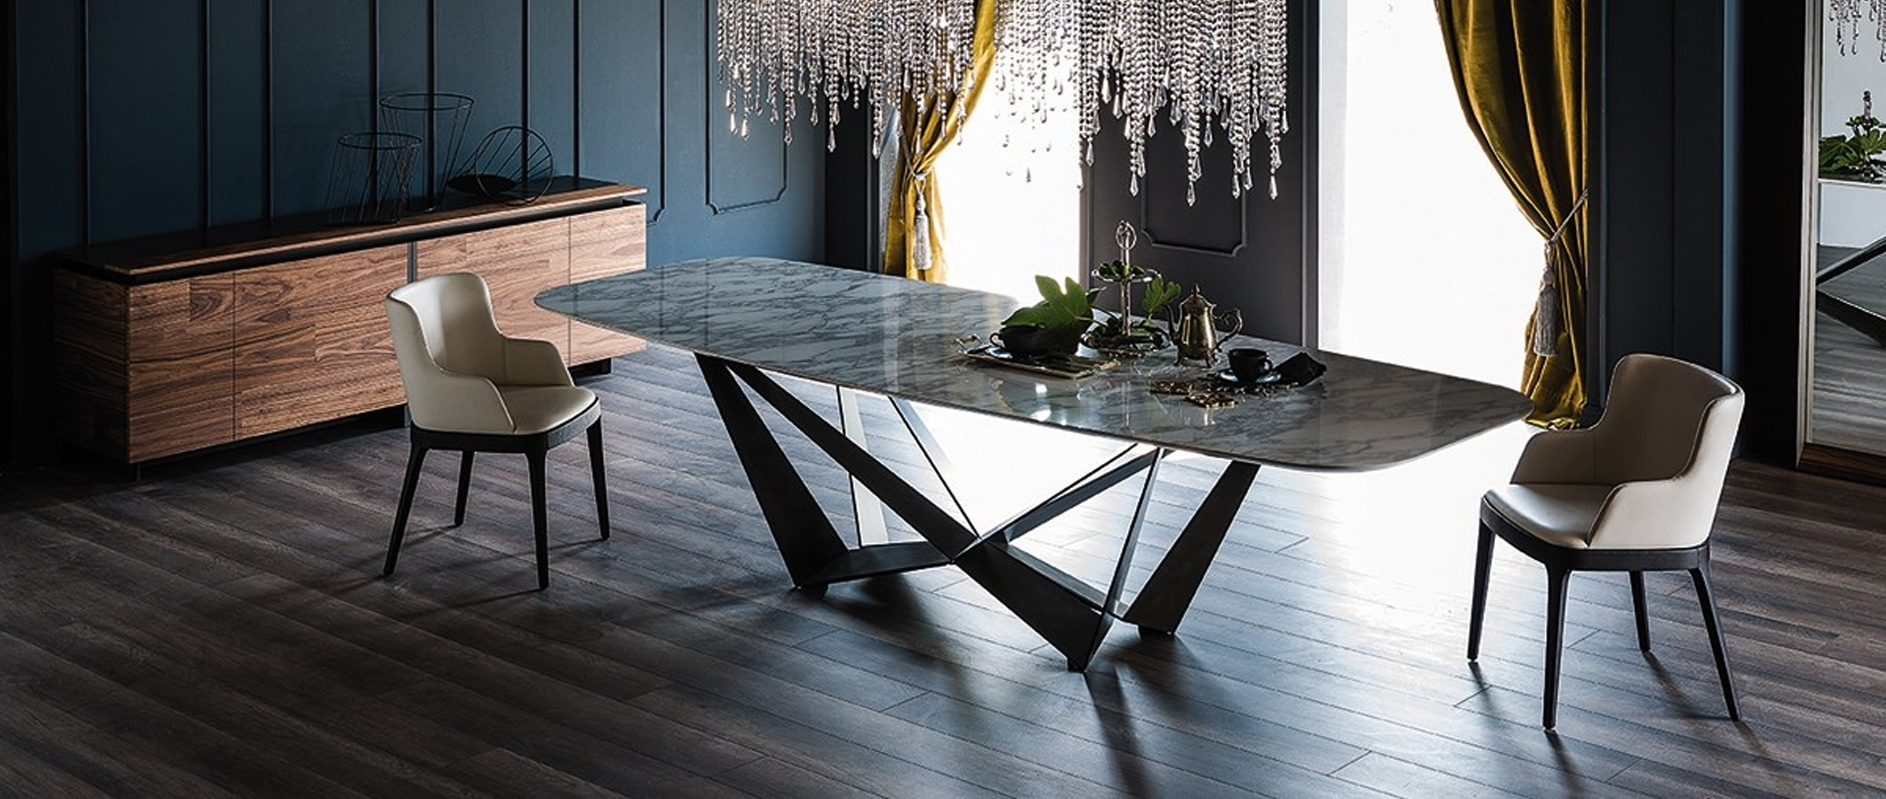 Modern Dining Room Furniture – Modern Dining Tables, Dining Chairs For Well Known Contemporary Dining Sets (View 20 of 25)